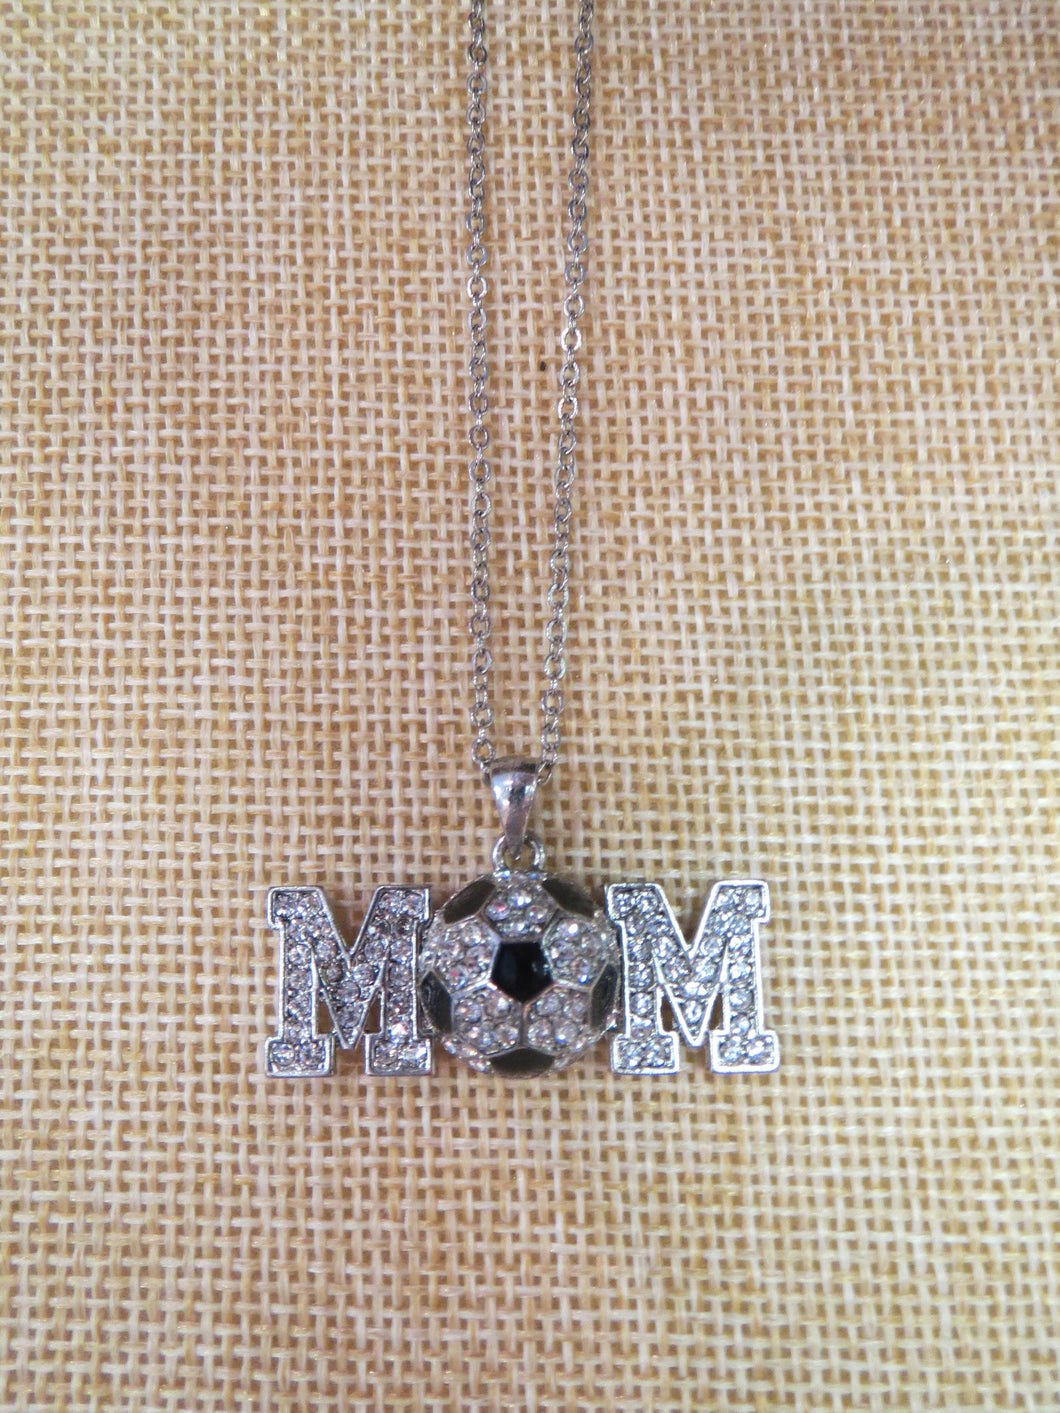 ADO | Hometown Pride Soccer Ball Mom Necklace - All Decd Out